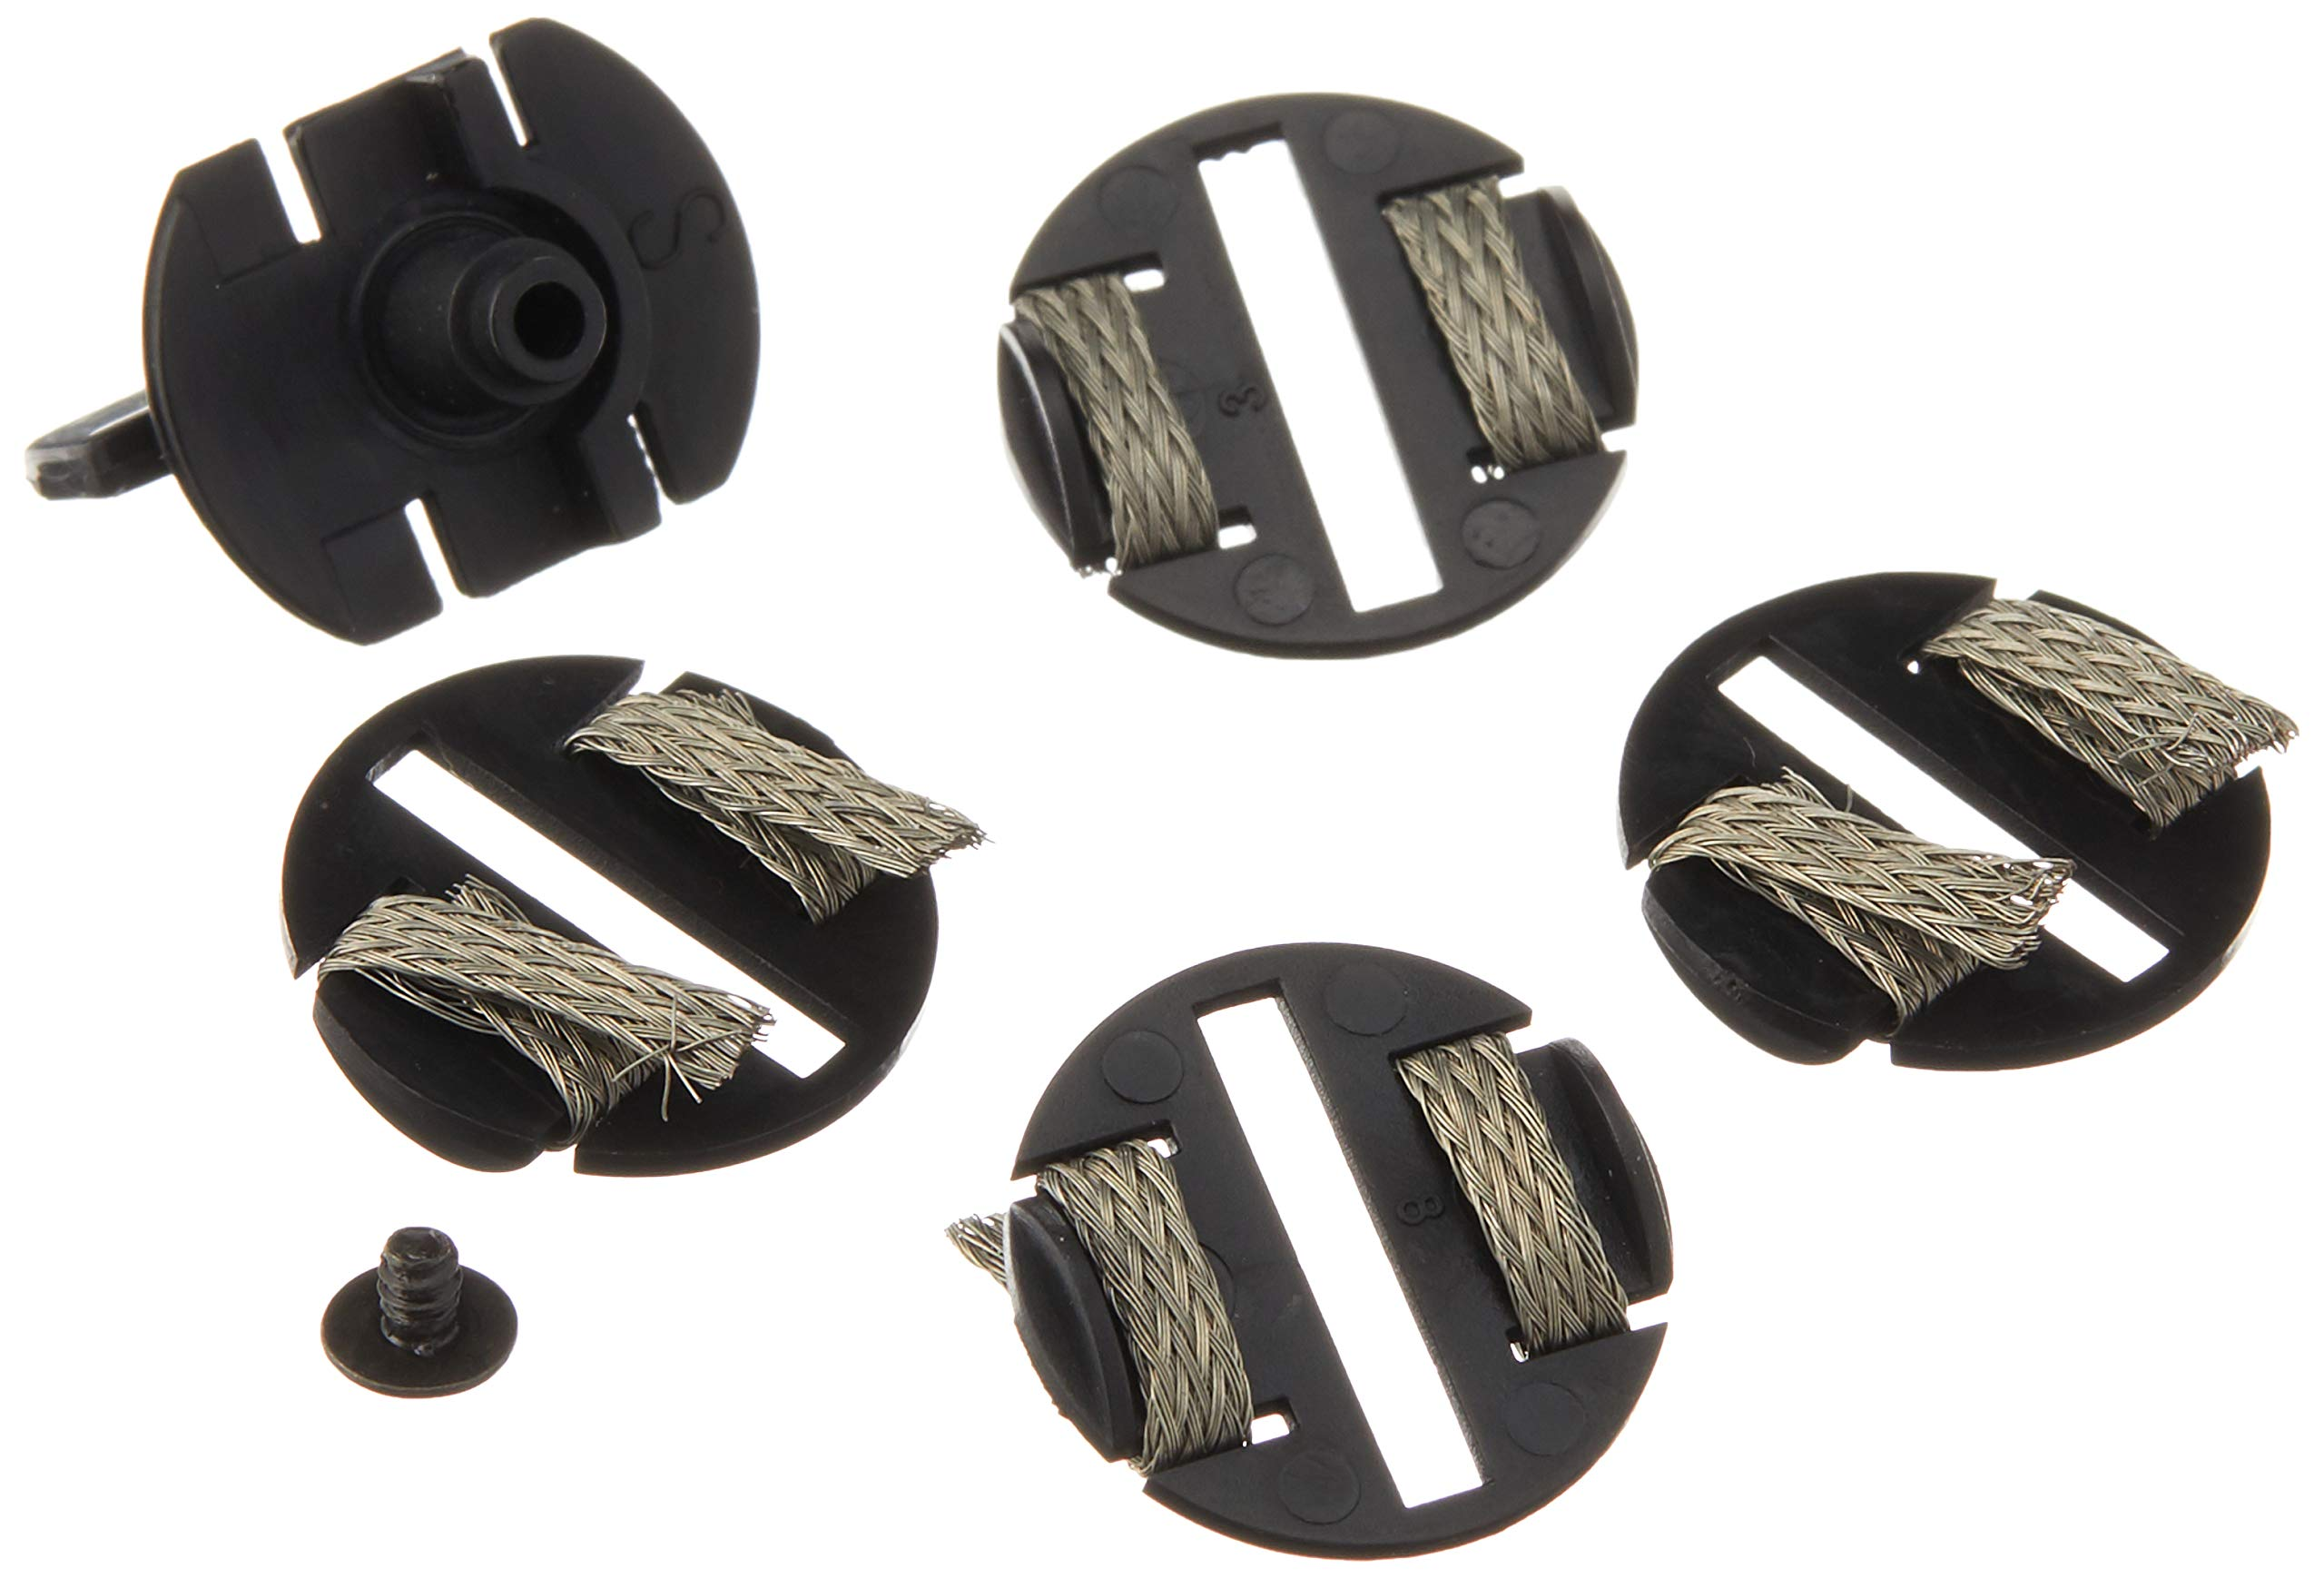 Scalextric Round Guide Blade with 4 Braid Plates and 1 Screw Parts Pack for 1:32 Slot Race Cars C8329